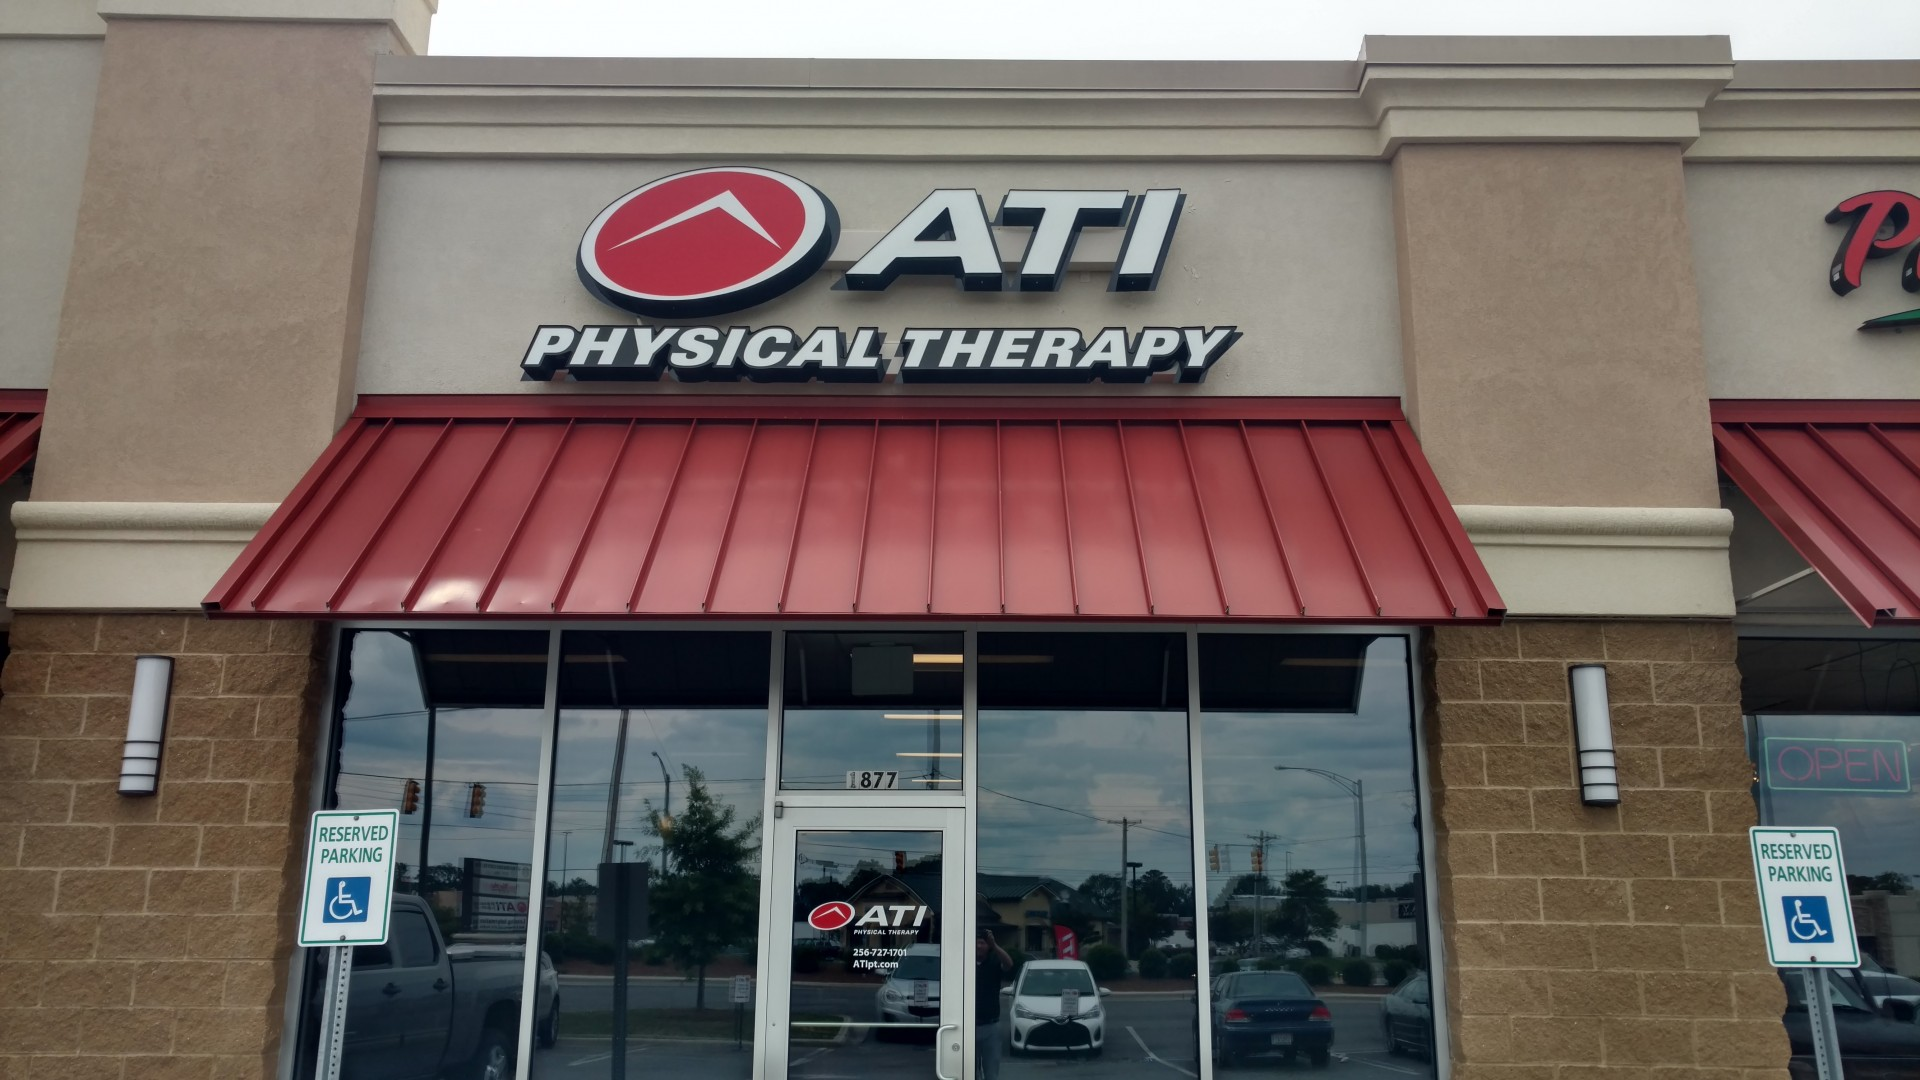 Clifton park physical therapy - Ati Physical Therapy Expands Presence In Alabama With Three New Locations